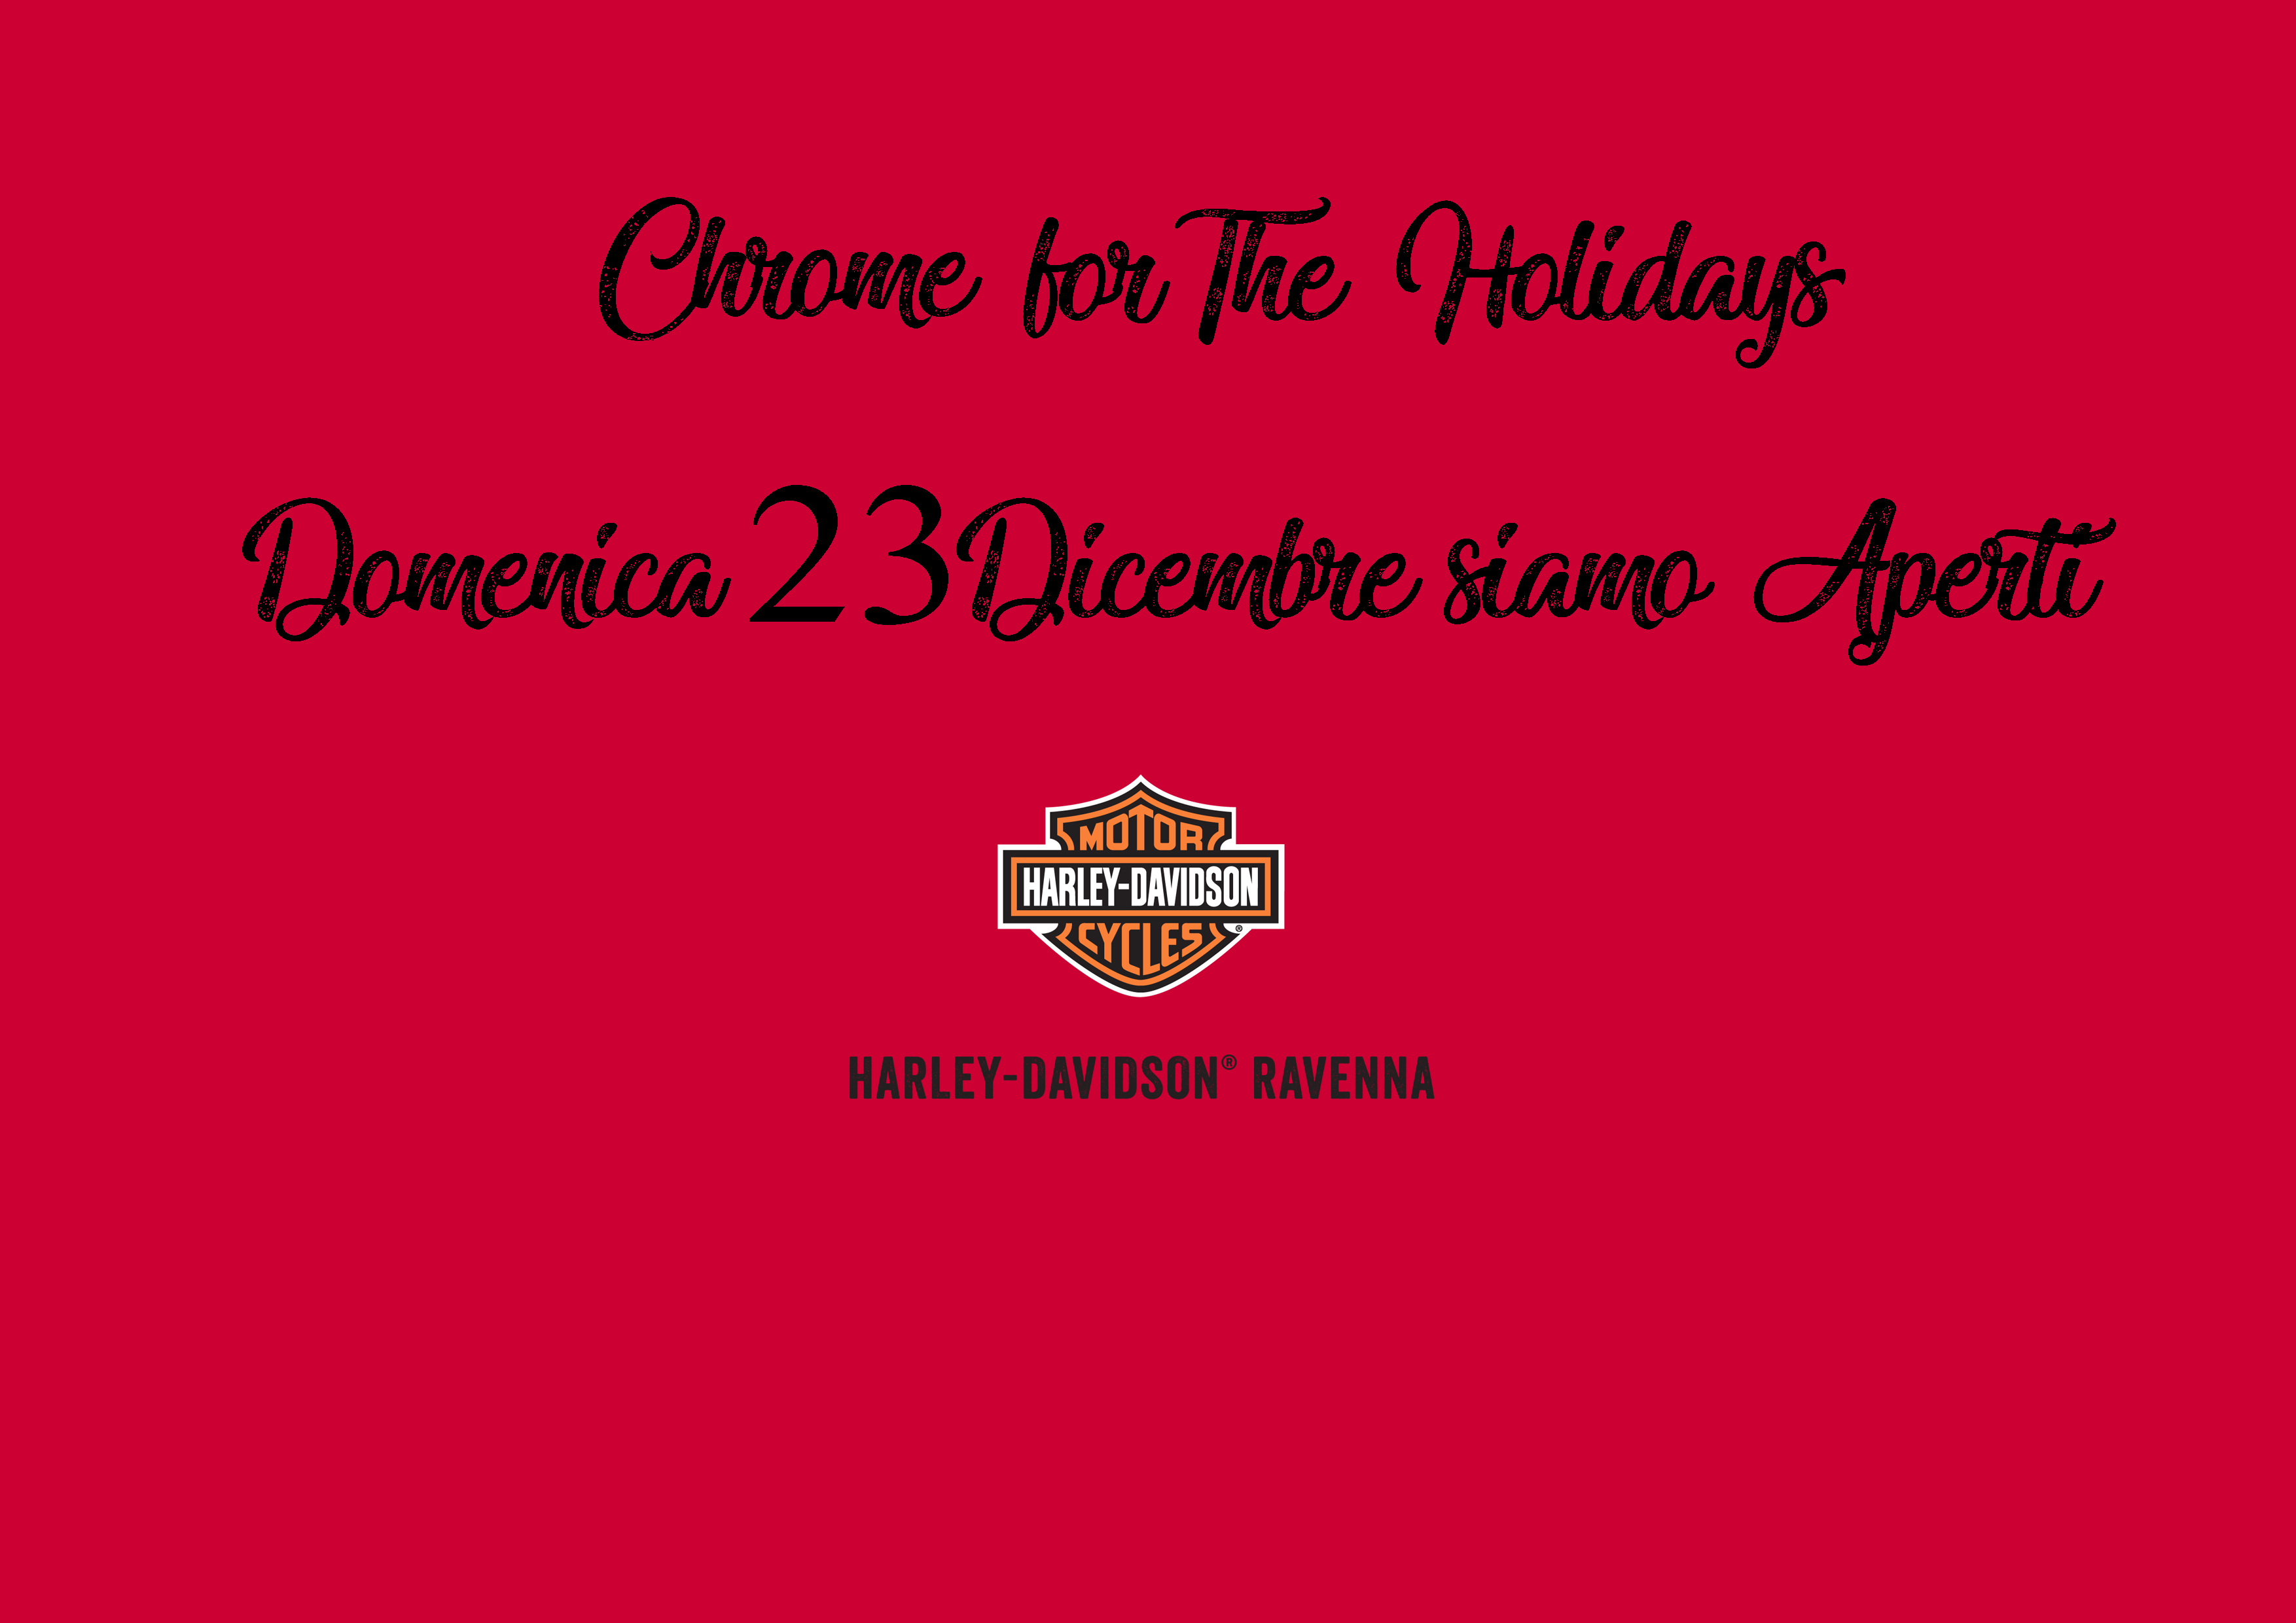 harley-davidson ravenna DOMENICA 23 DICEMBRE WE ARE OPEN